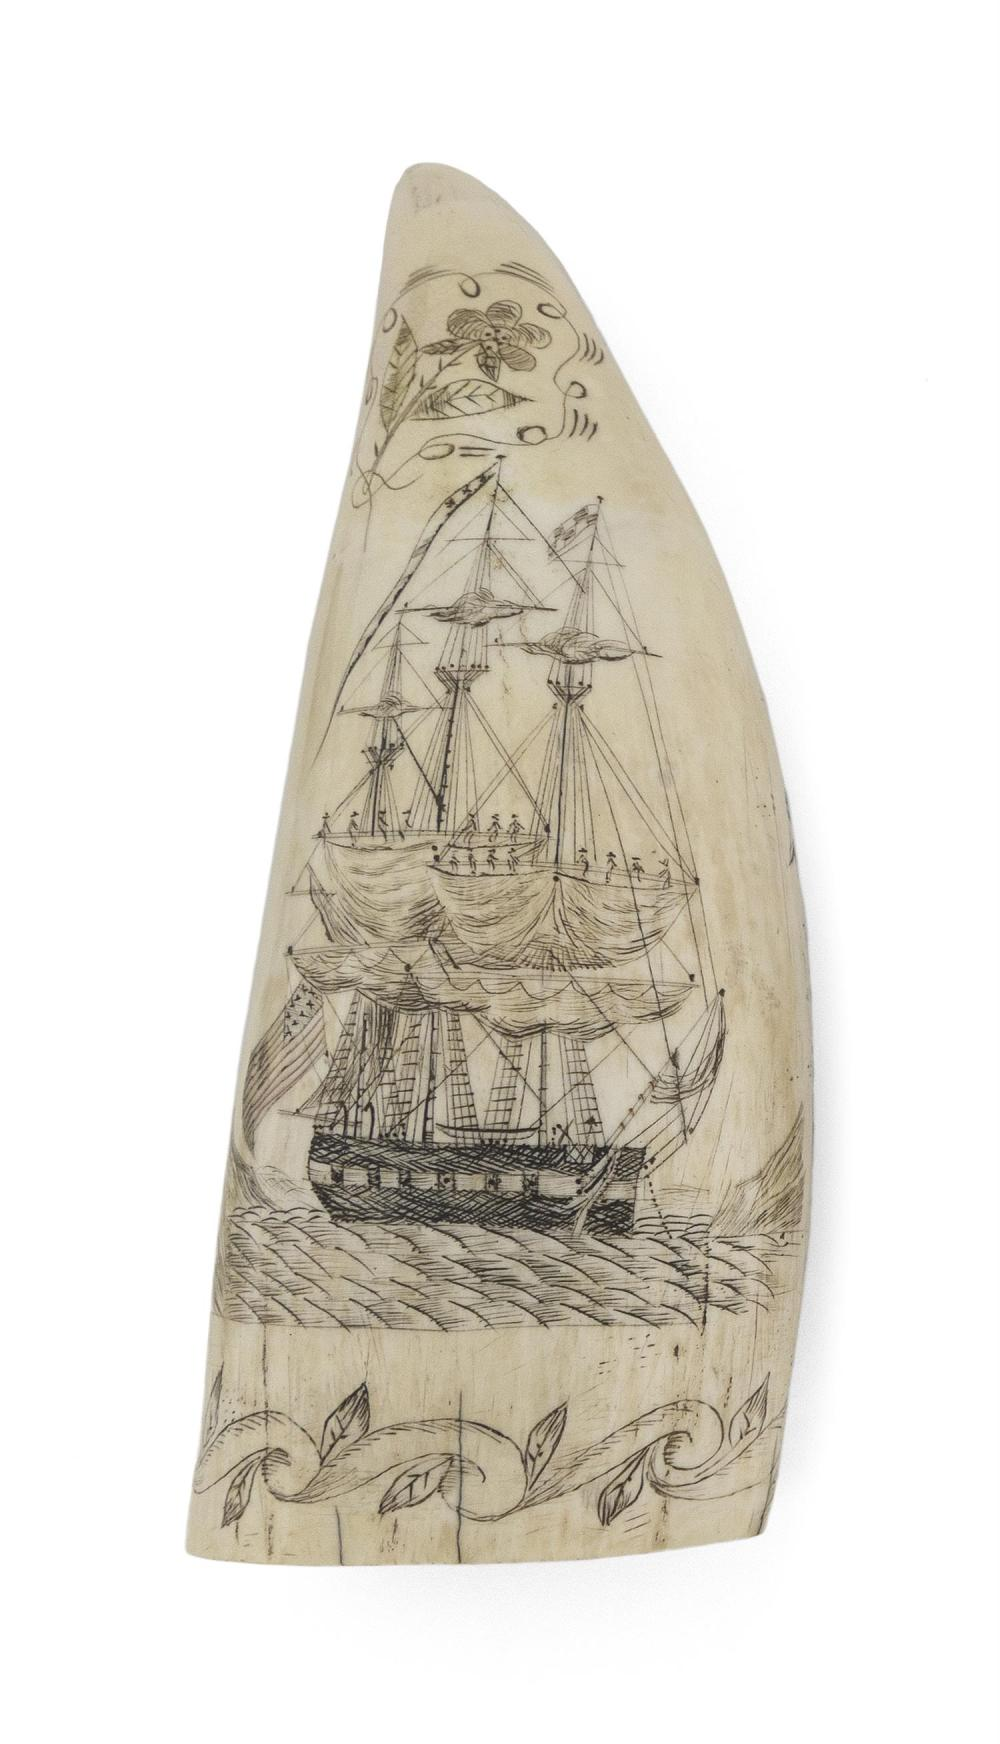 * POLYCHROME ENGRAVED WHALE'S TOOTH WITH MARITIME IMAGERY Obverse depicts a warship flying a large American flag off the stern, a lo..